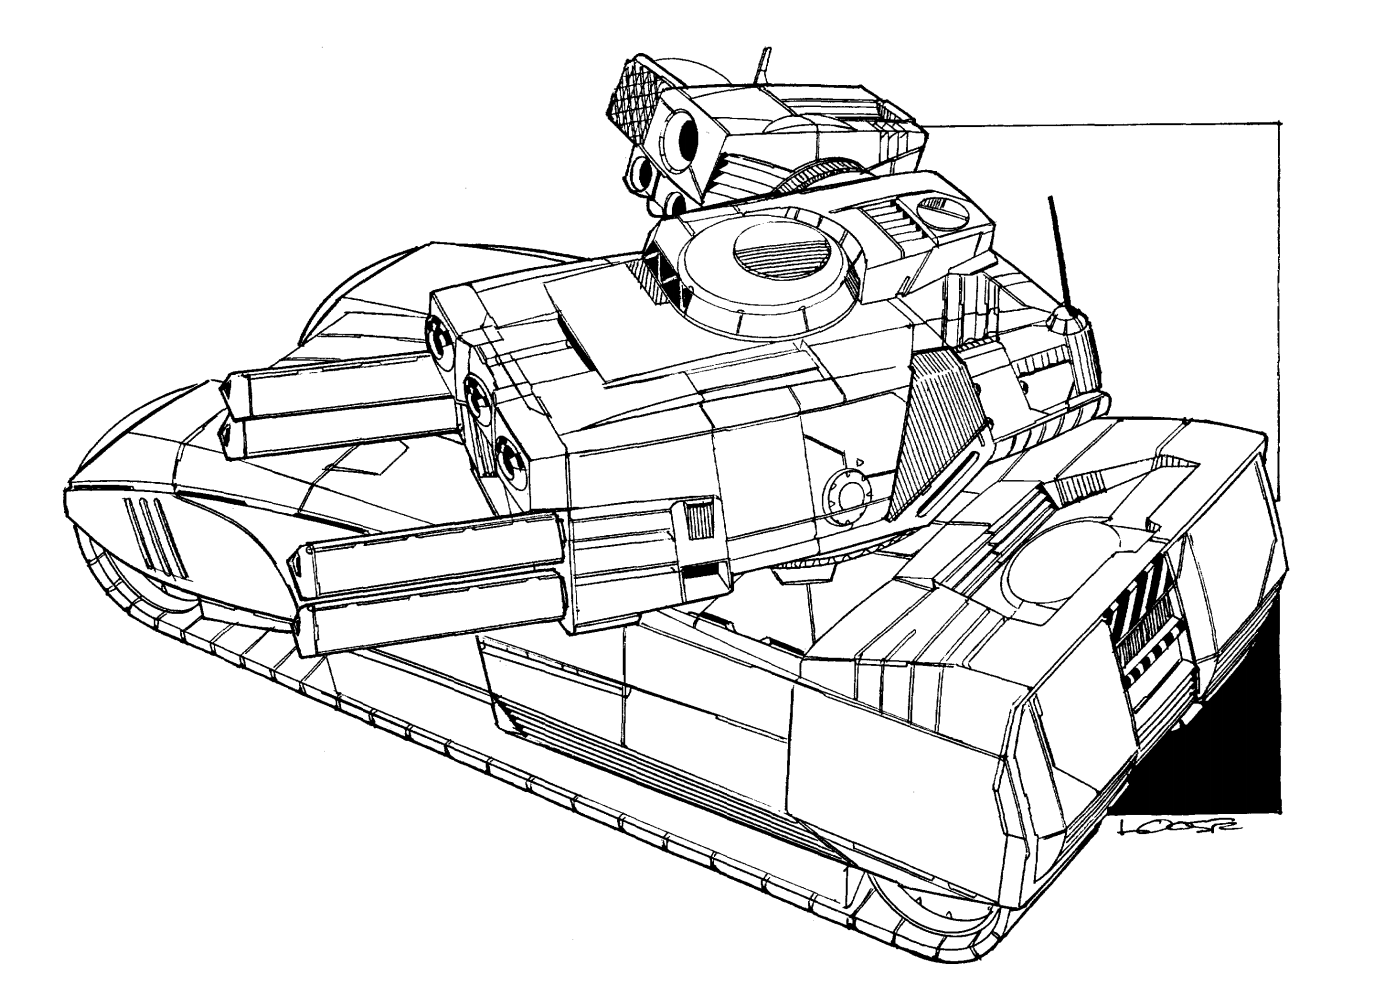 File:Ontos3058.png